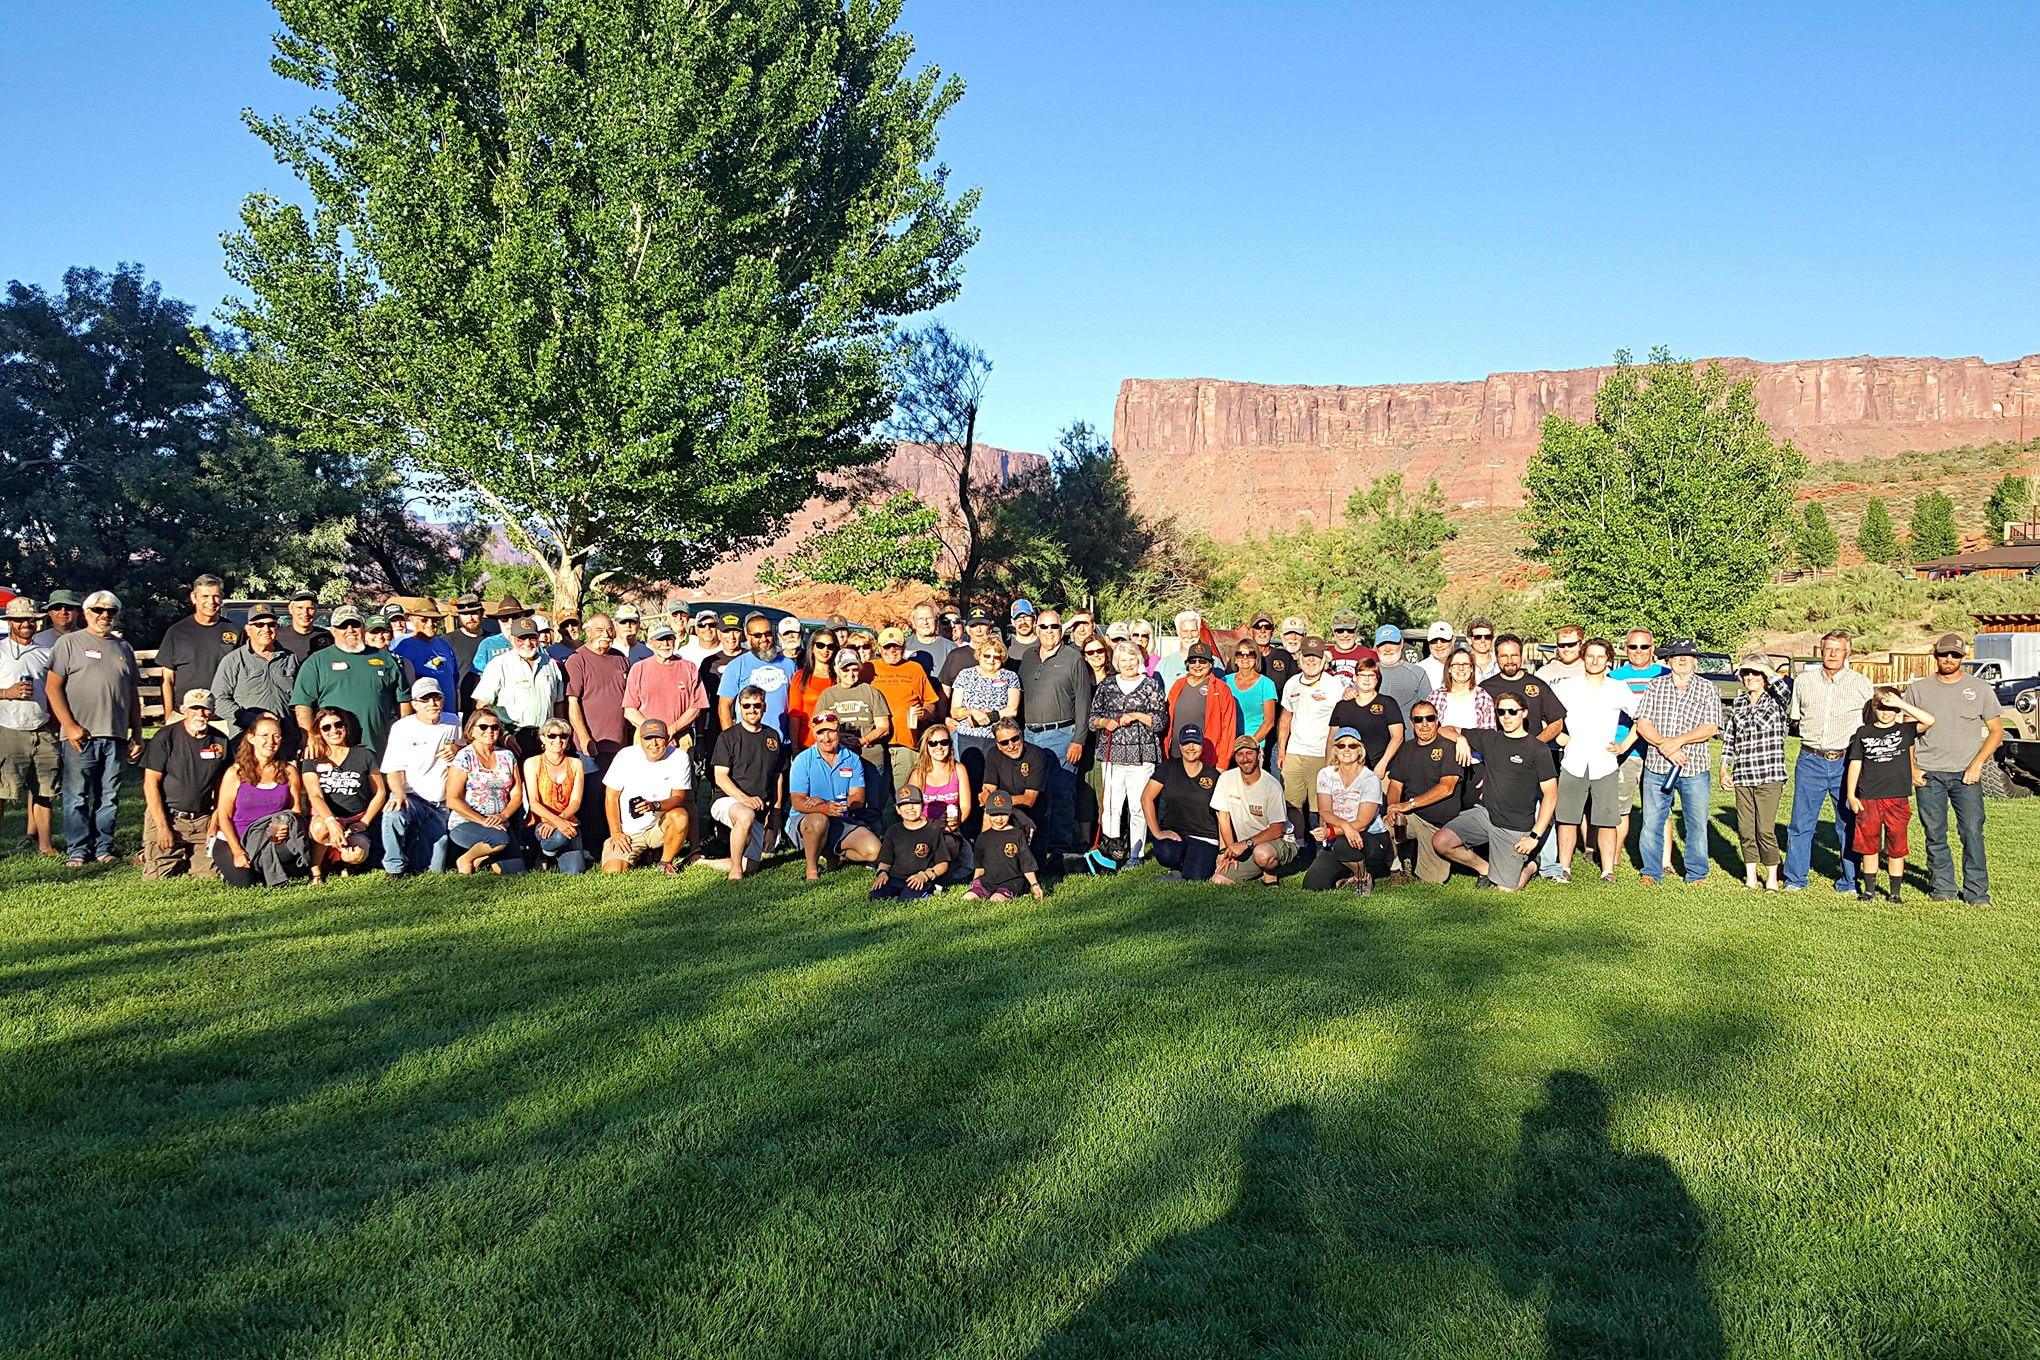 Close to 50 vintage Willys and over 100 people registered for the 9th Annual Moab Willys Rally. This event continues to grow, and if you love old Willys, you should attend this event.